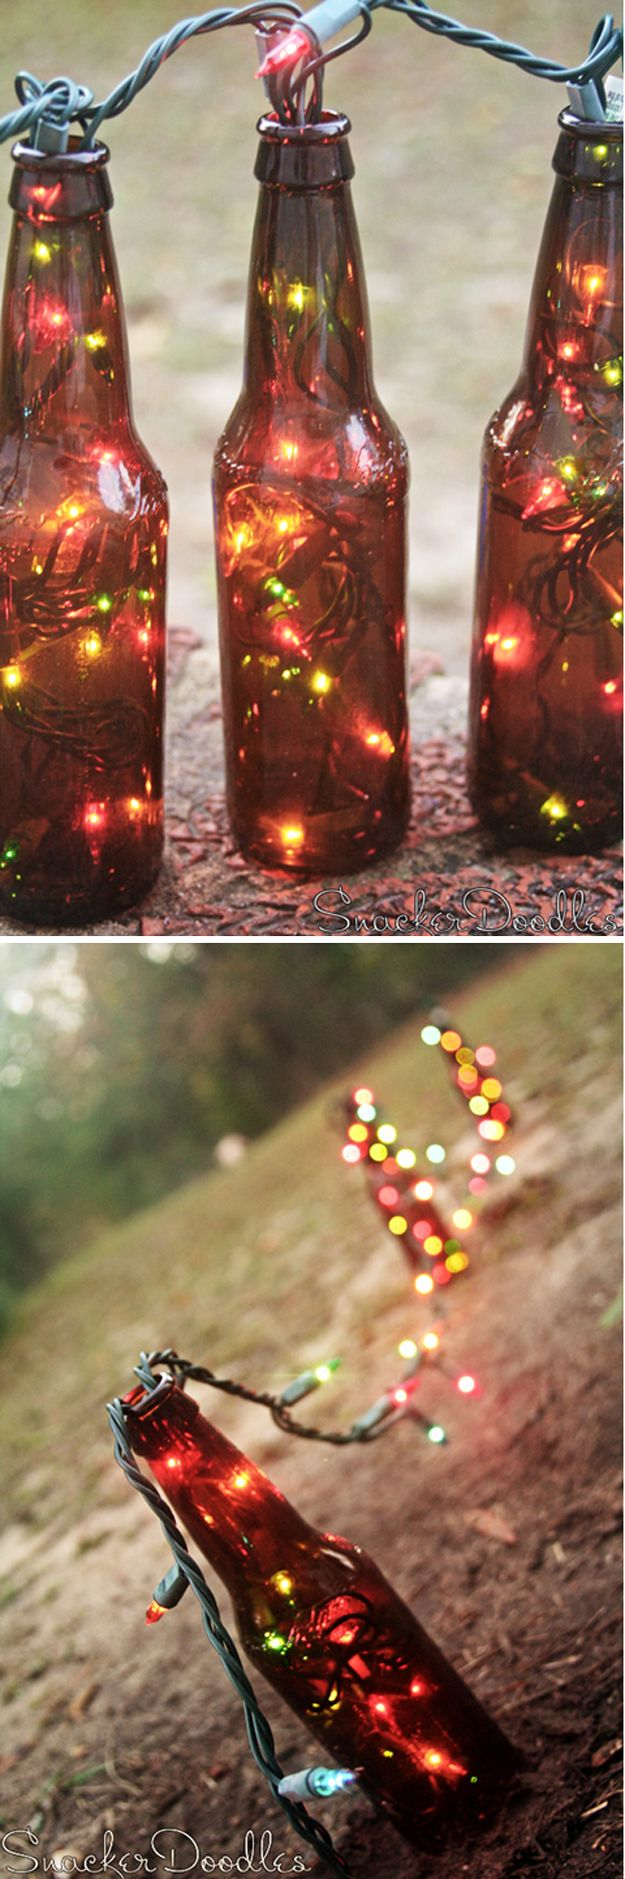 DIY Beer Bottle Light Crafts by DIY Ready at  www.diyready.com/diy-projects-uses-for-beer-bottles/